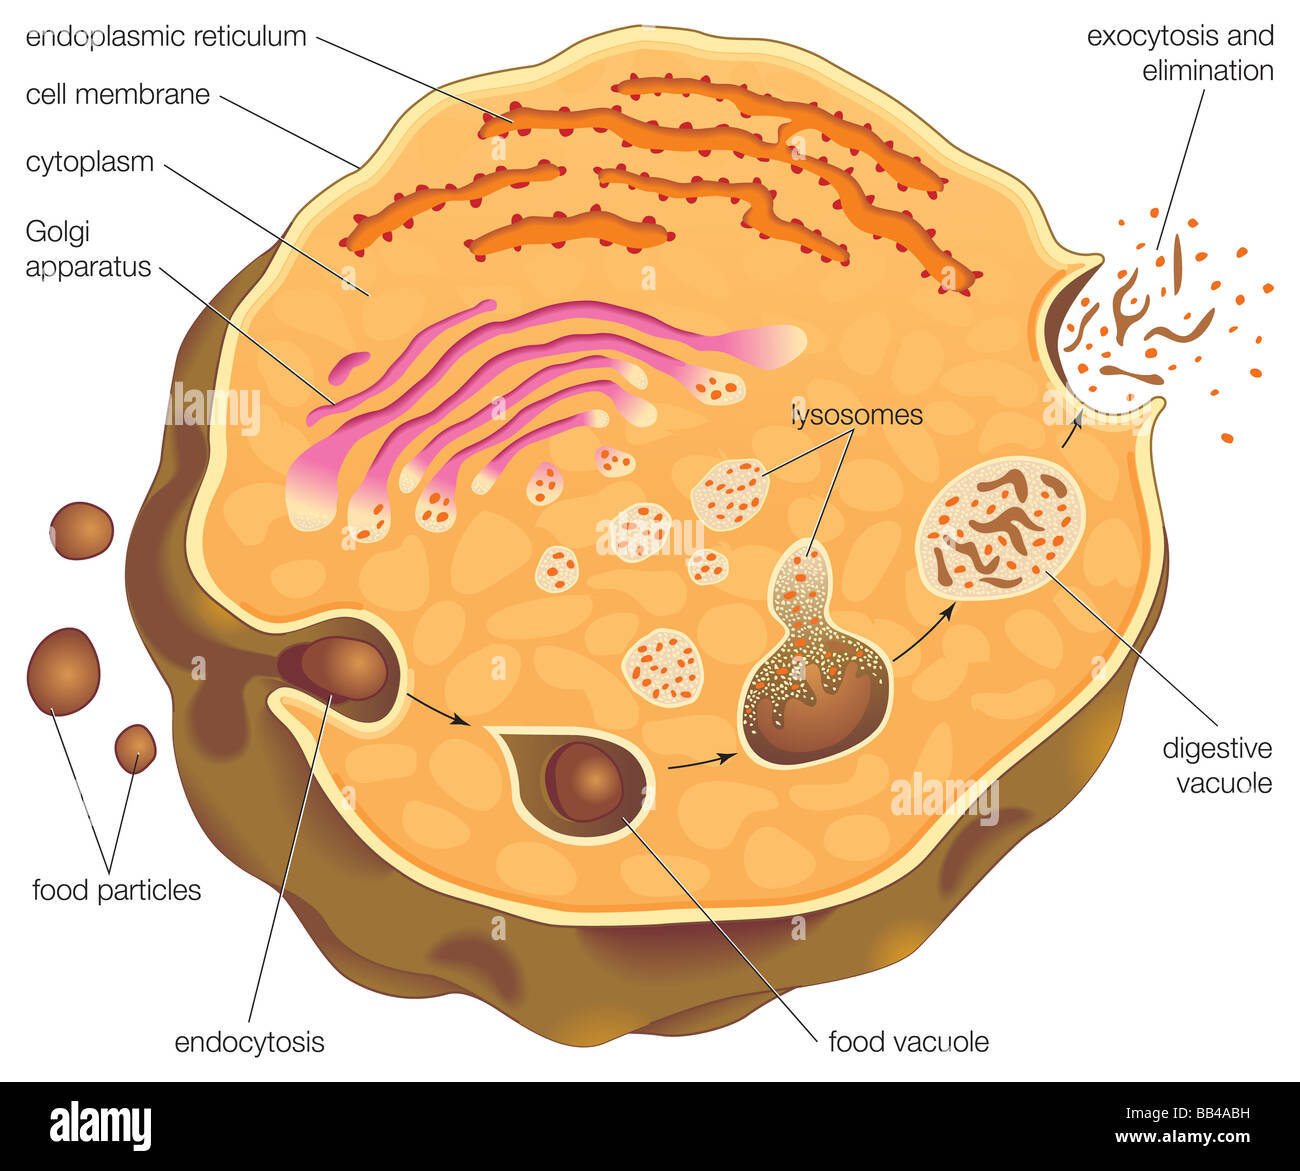 vacuole photos  u0026 vacuole images - page 2